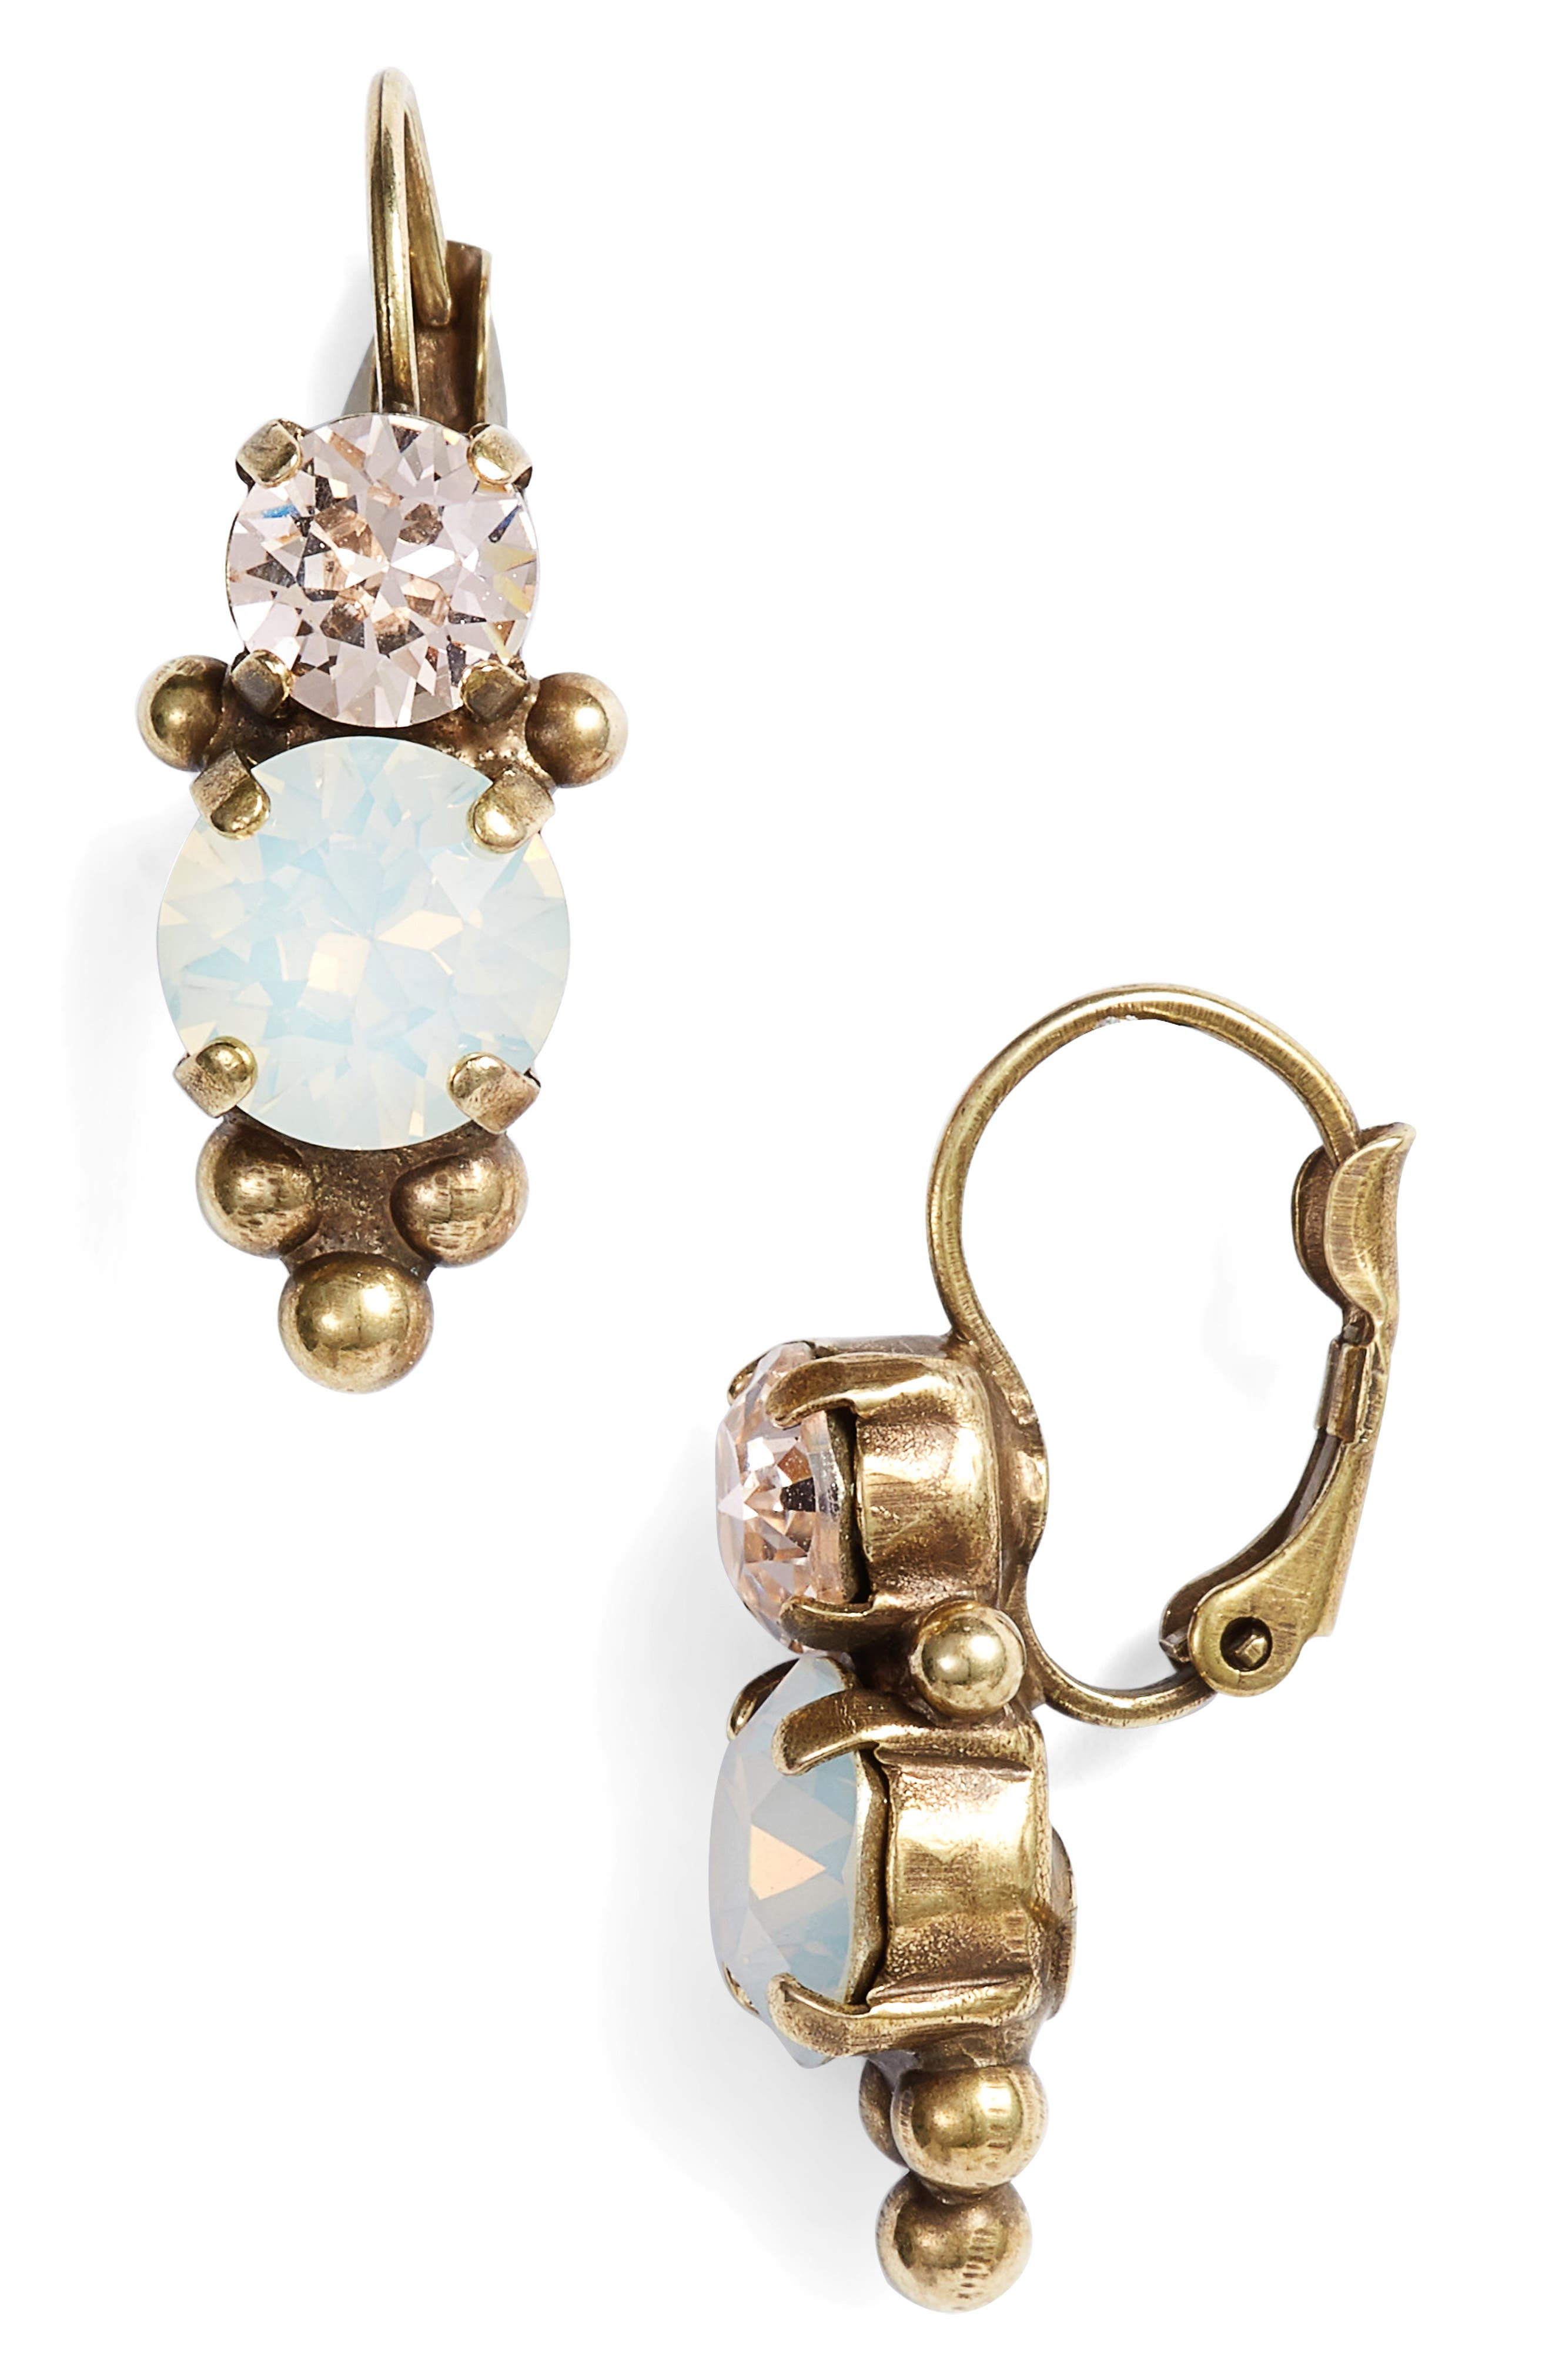 Ornate Crystal Rounds Drop Earrings,                             Main thumbnail 1, color,                             710